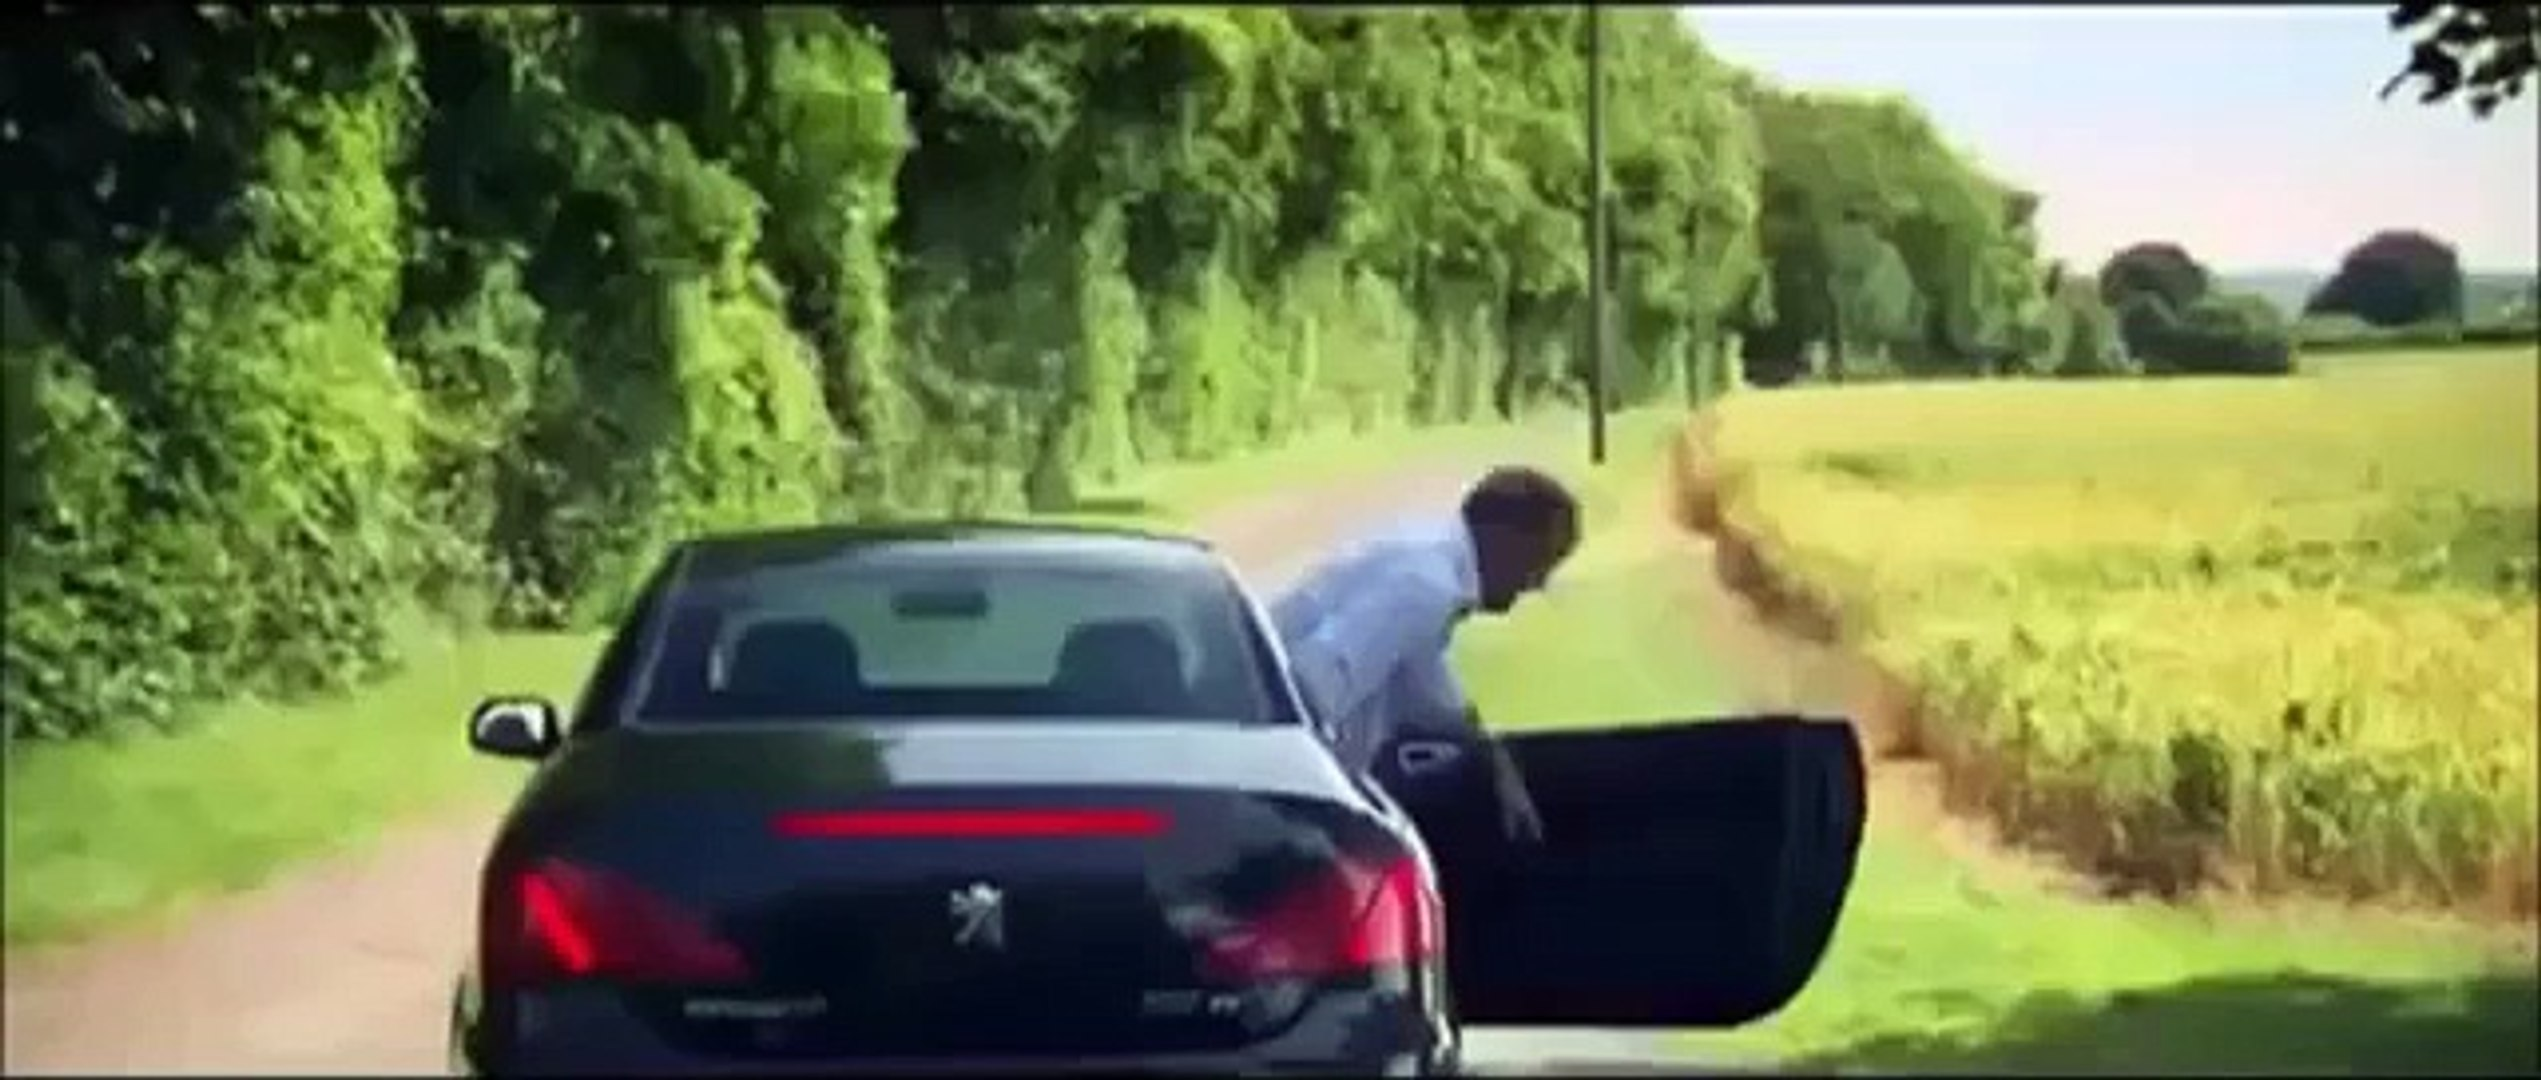 Top Gear Peugeot Terrible Cars Video Dailymotion